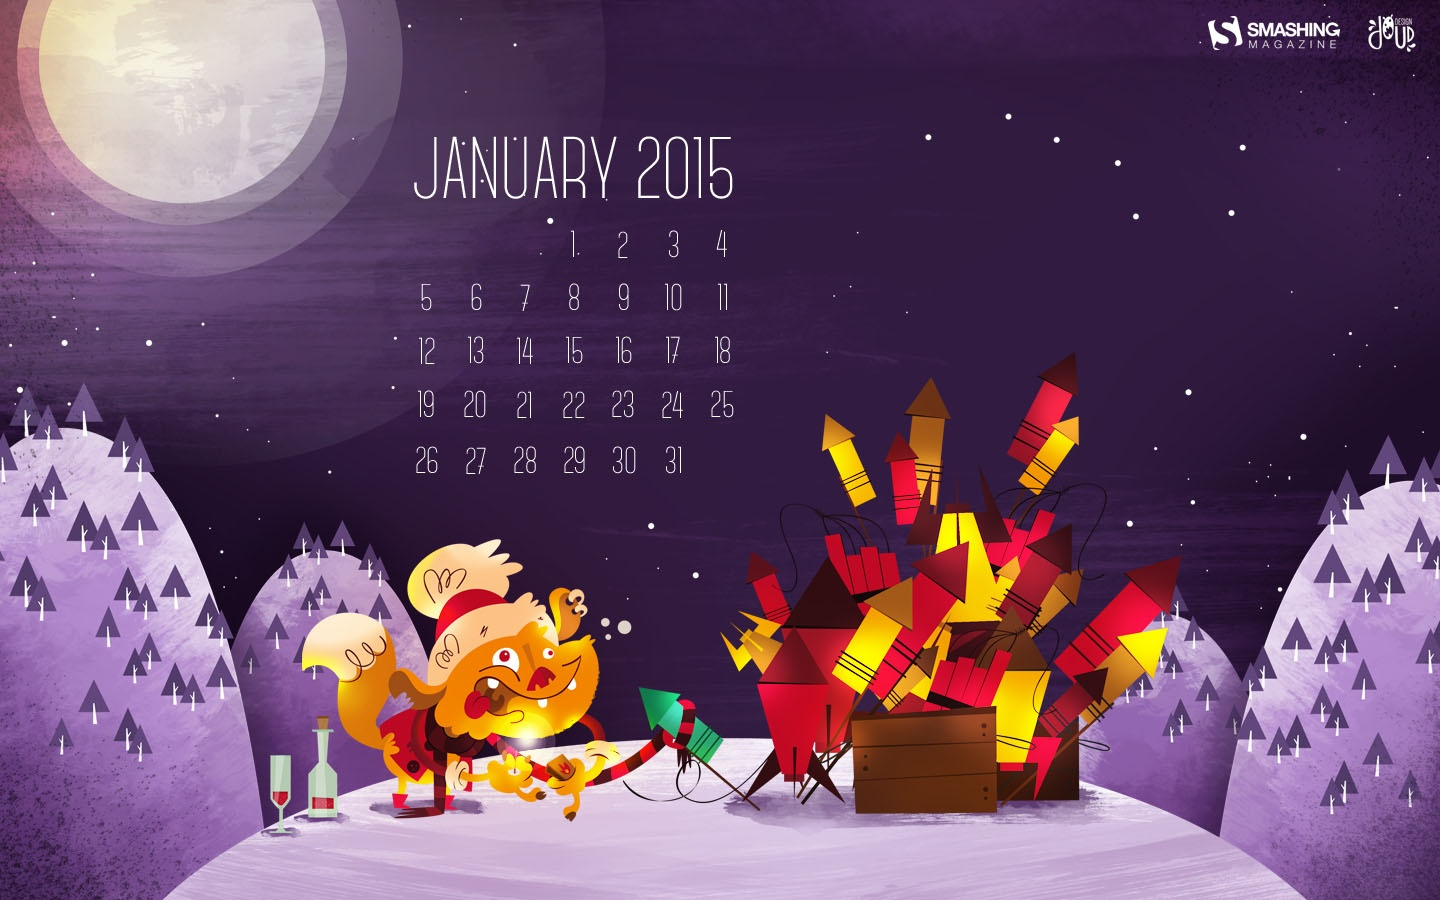 In January Calendar Wallpaper 51324